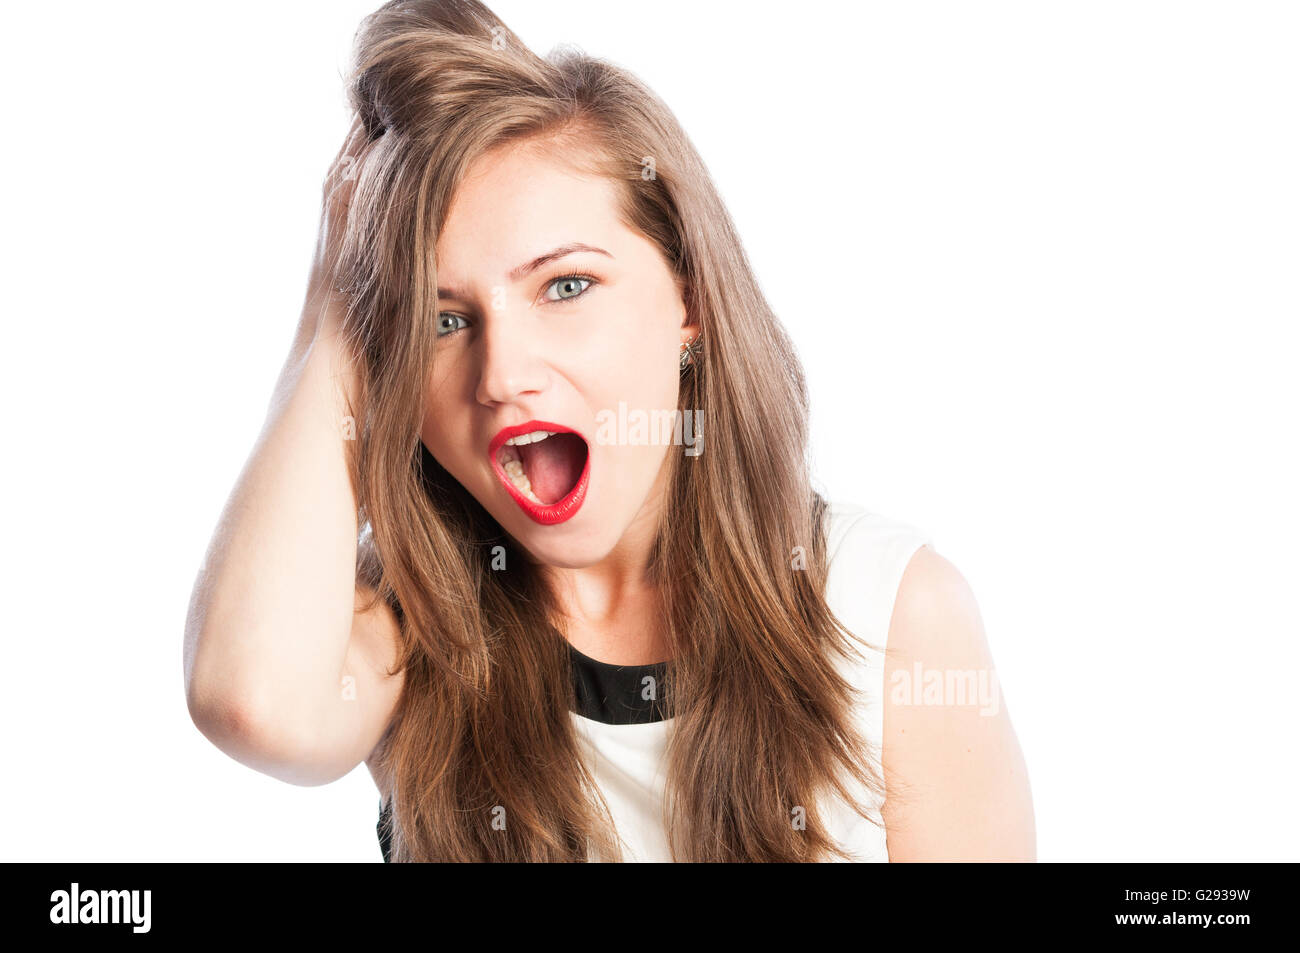 Female model amazed, surprised and astonished, grabbing her hair - Stock Image